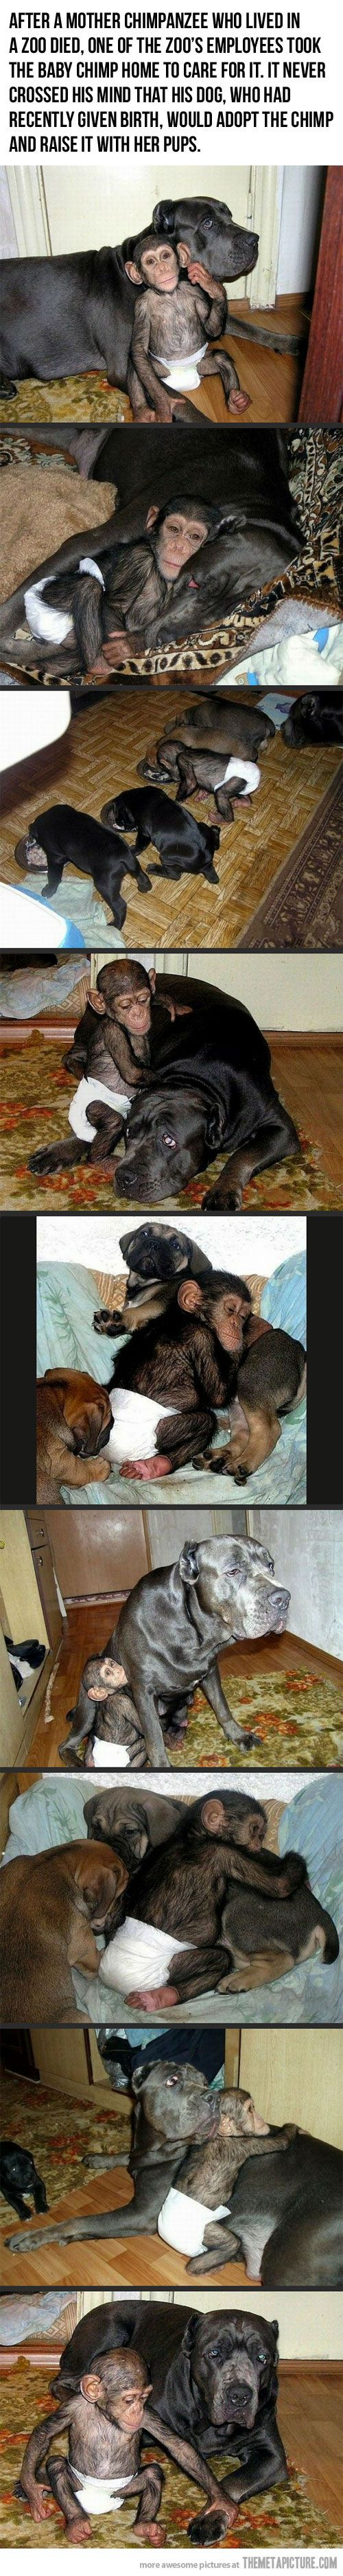 cutest thing ever: Animals, Sweet, Adopts Baby, Baby Chimpanzee, My Heart, Cutest Things, Baby Monkeys, Dog Adopts, Cane Corso